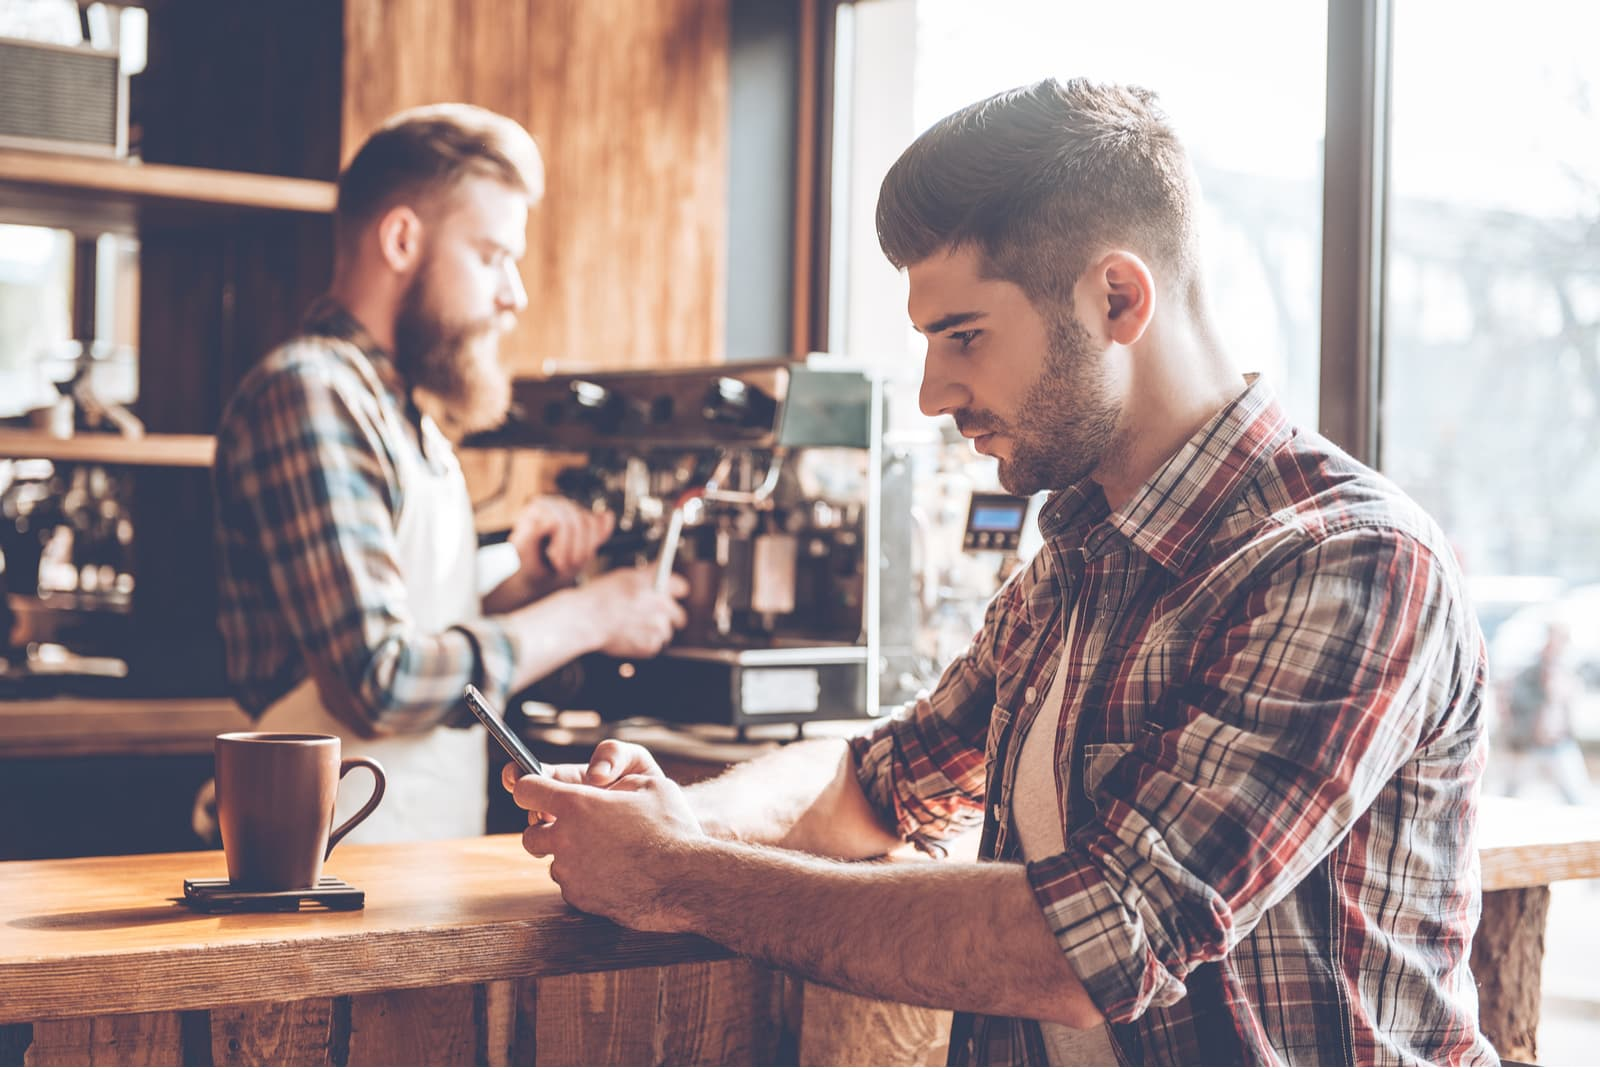 a man in a plaid shirt at the bar drinks coffee and uses a smartphone